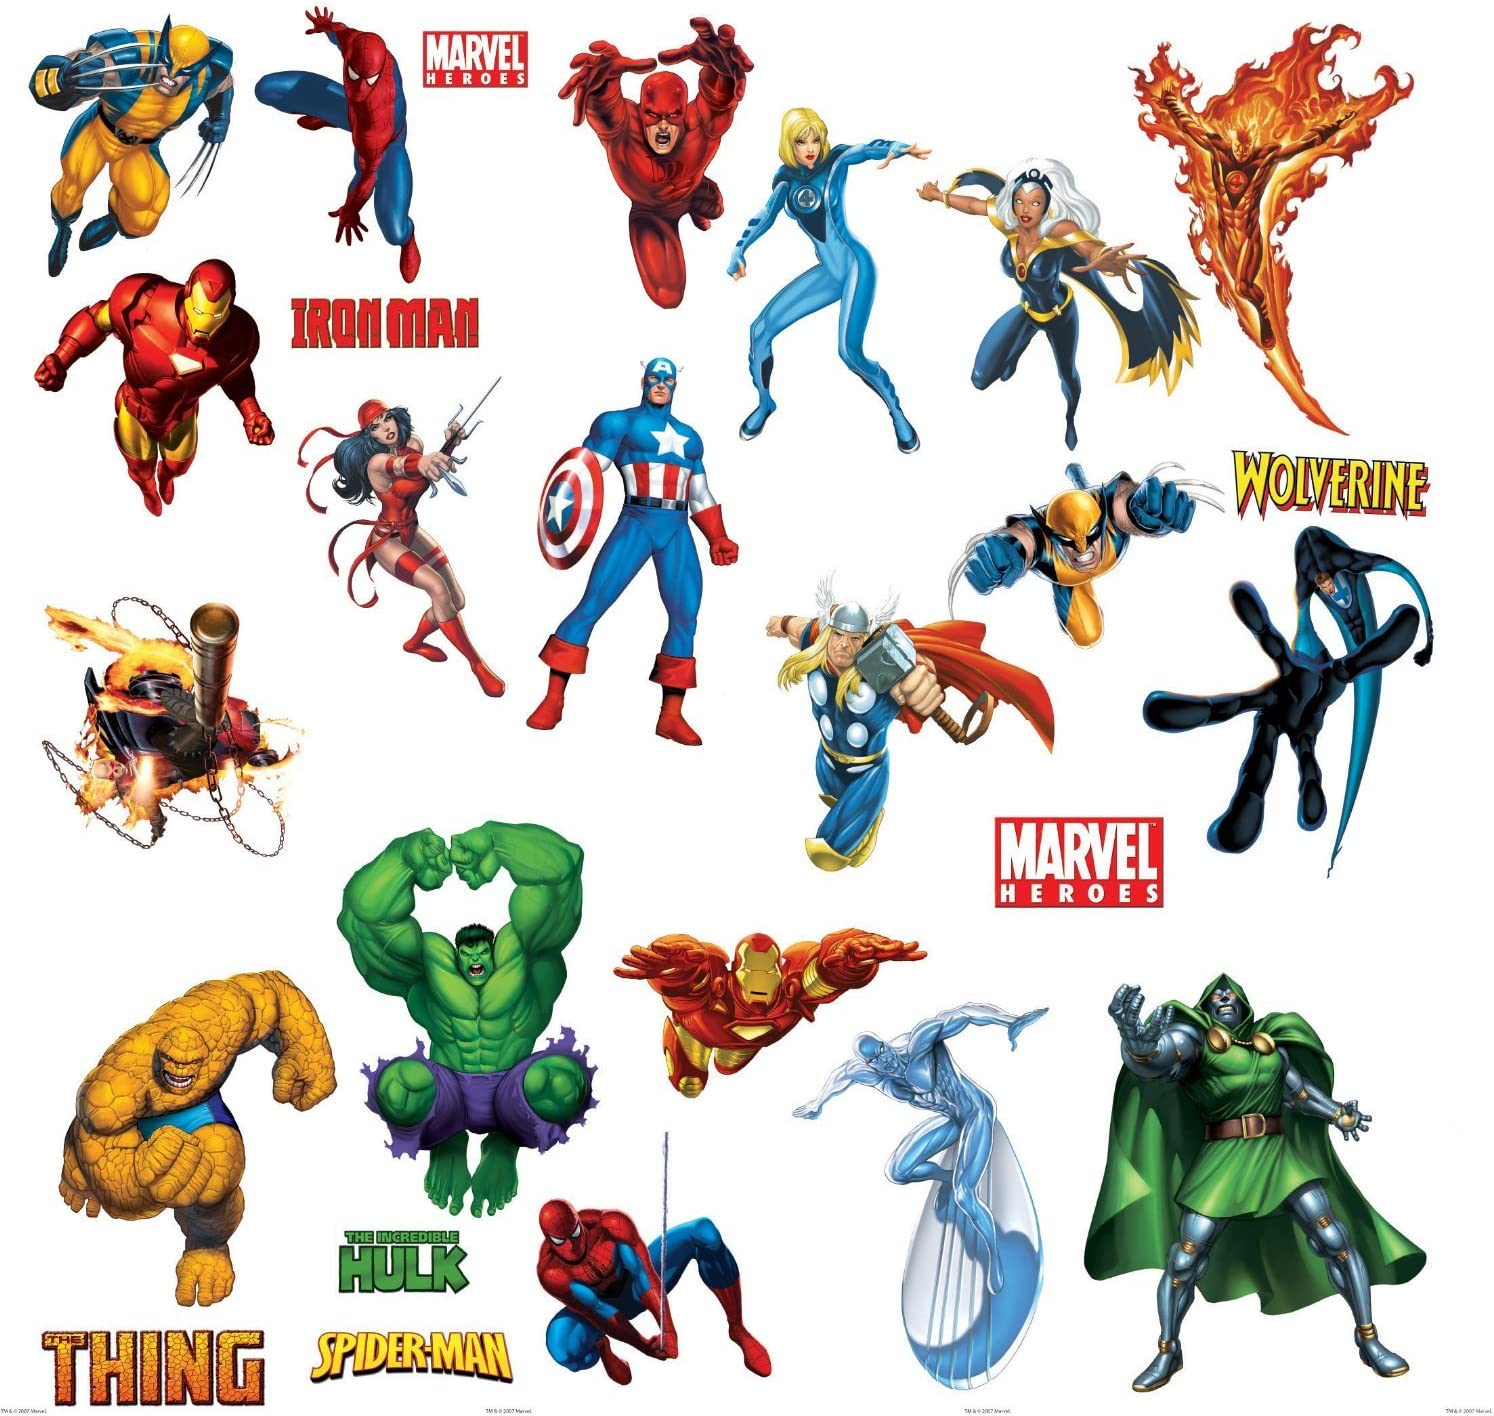 Marvel Heroes Comic - Spider-man, Captain America, Hulk, Fantastic 4, Thing, Thor, Wolverine, Ironman, Ghost Rider Wall Decal